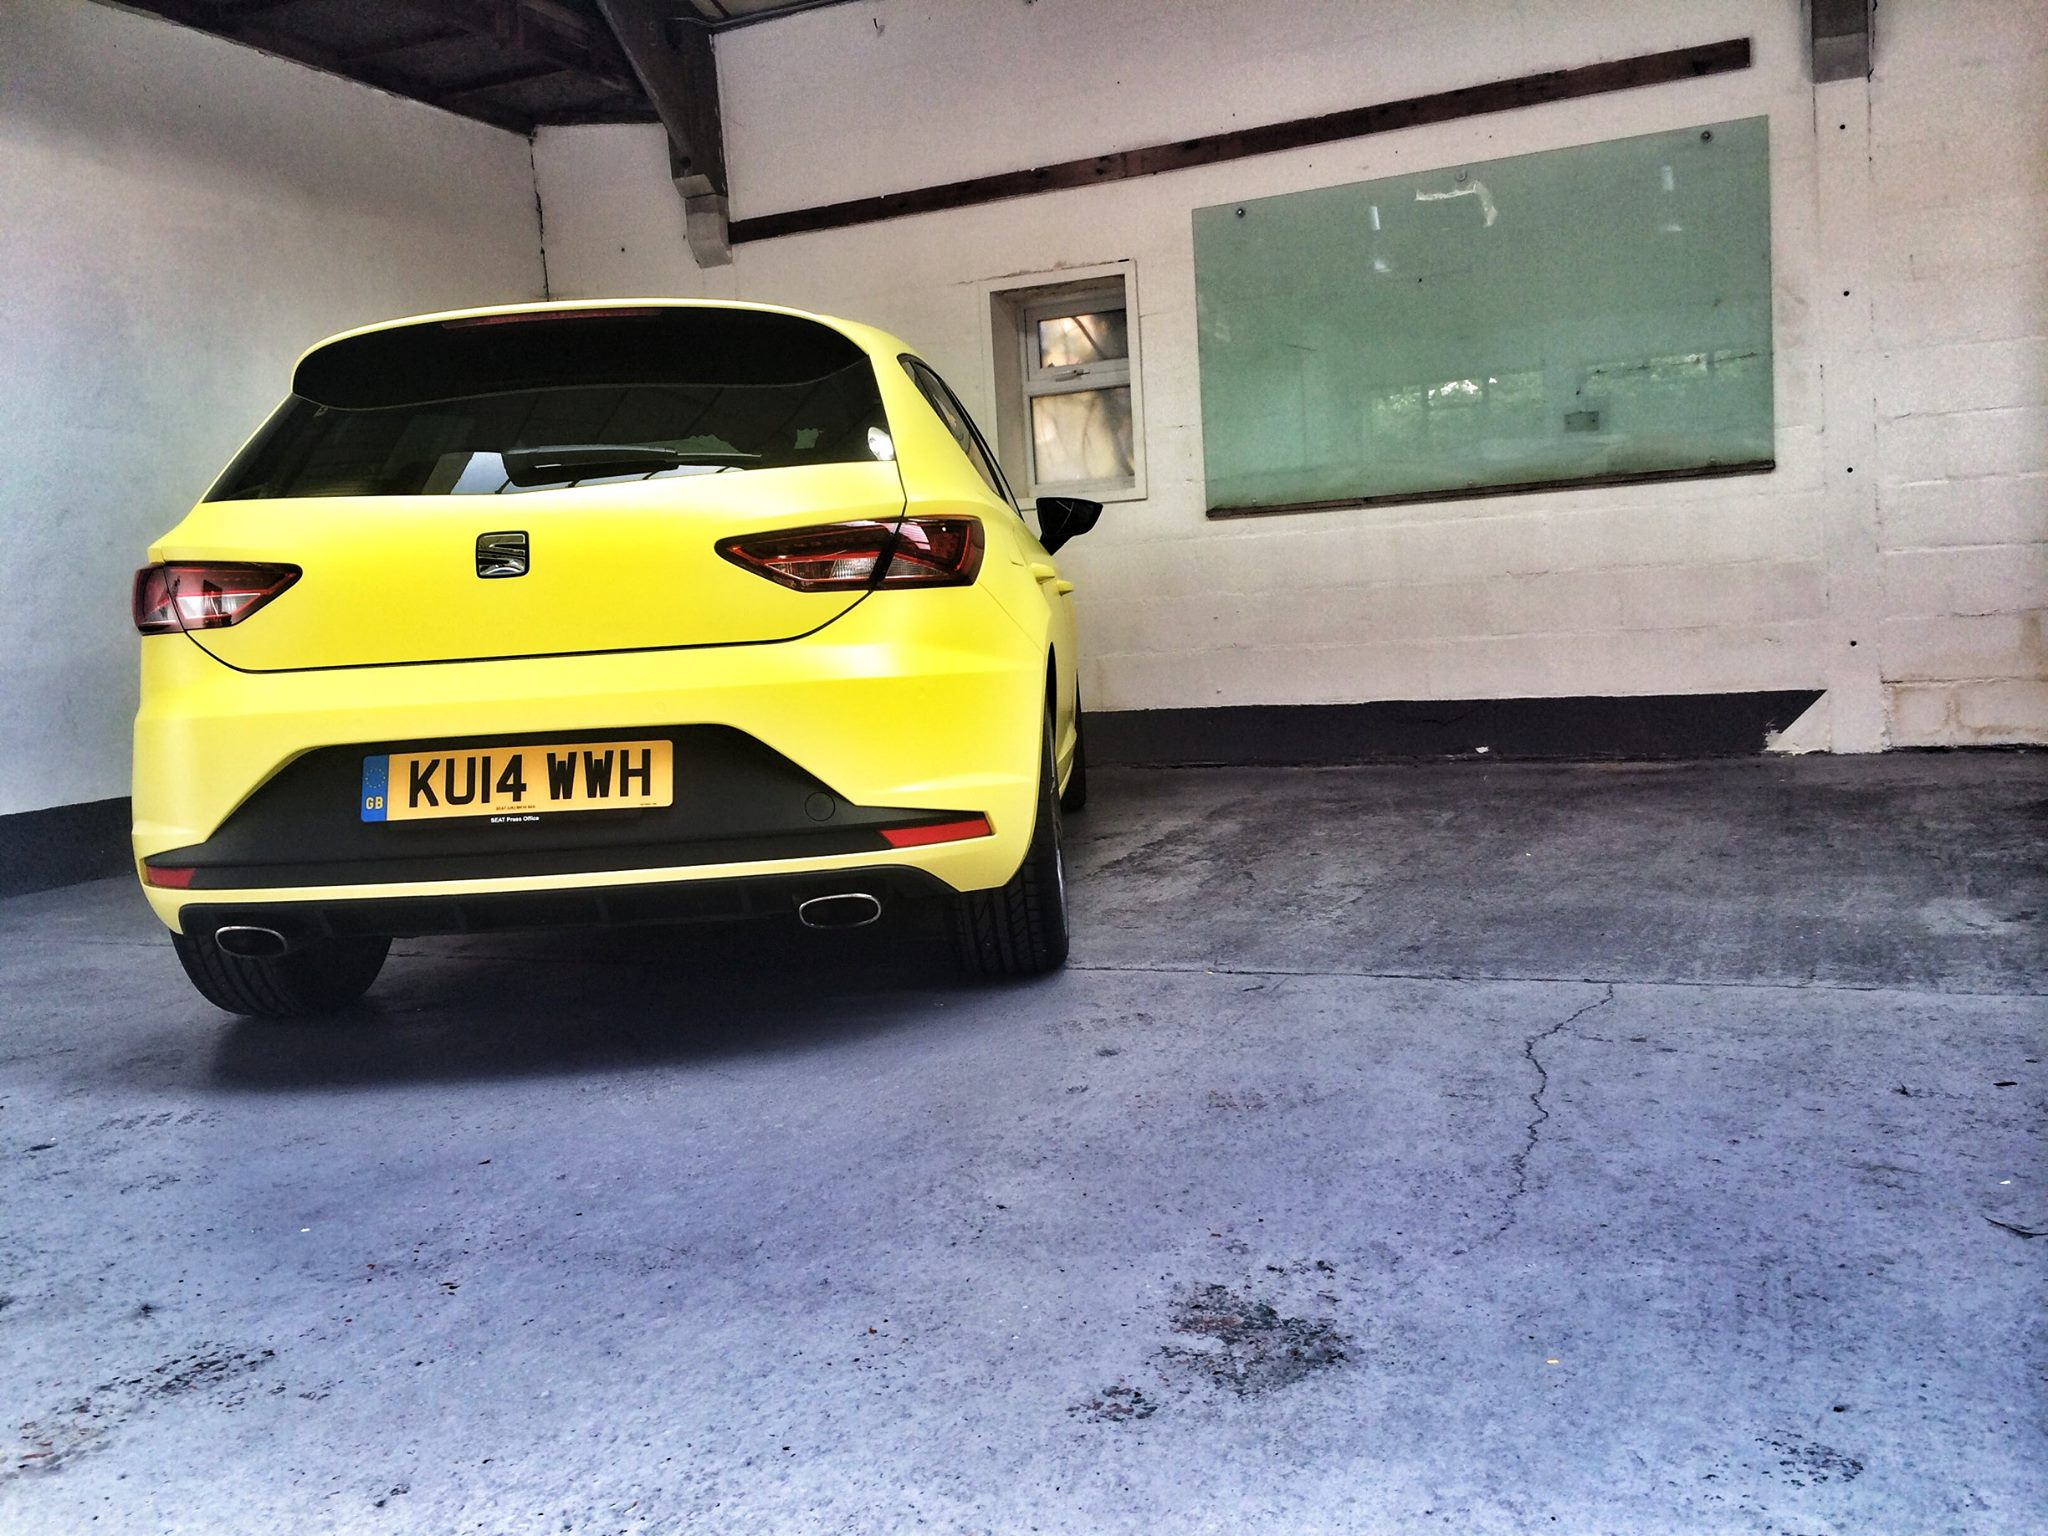 New Seat Leon Cupra Wrapped In Matte Neon Yellow And